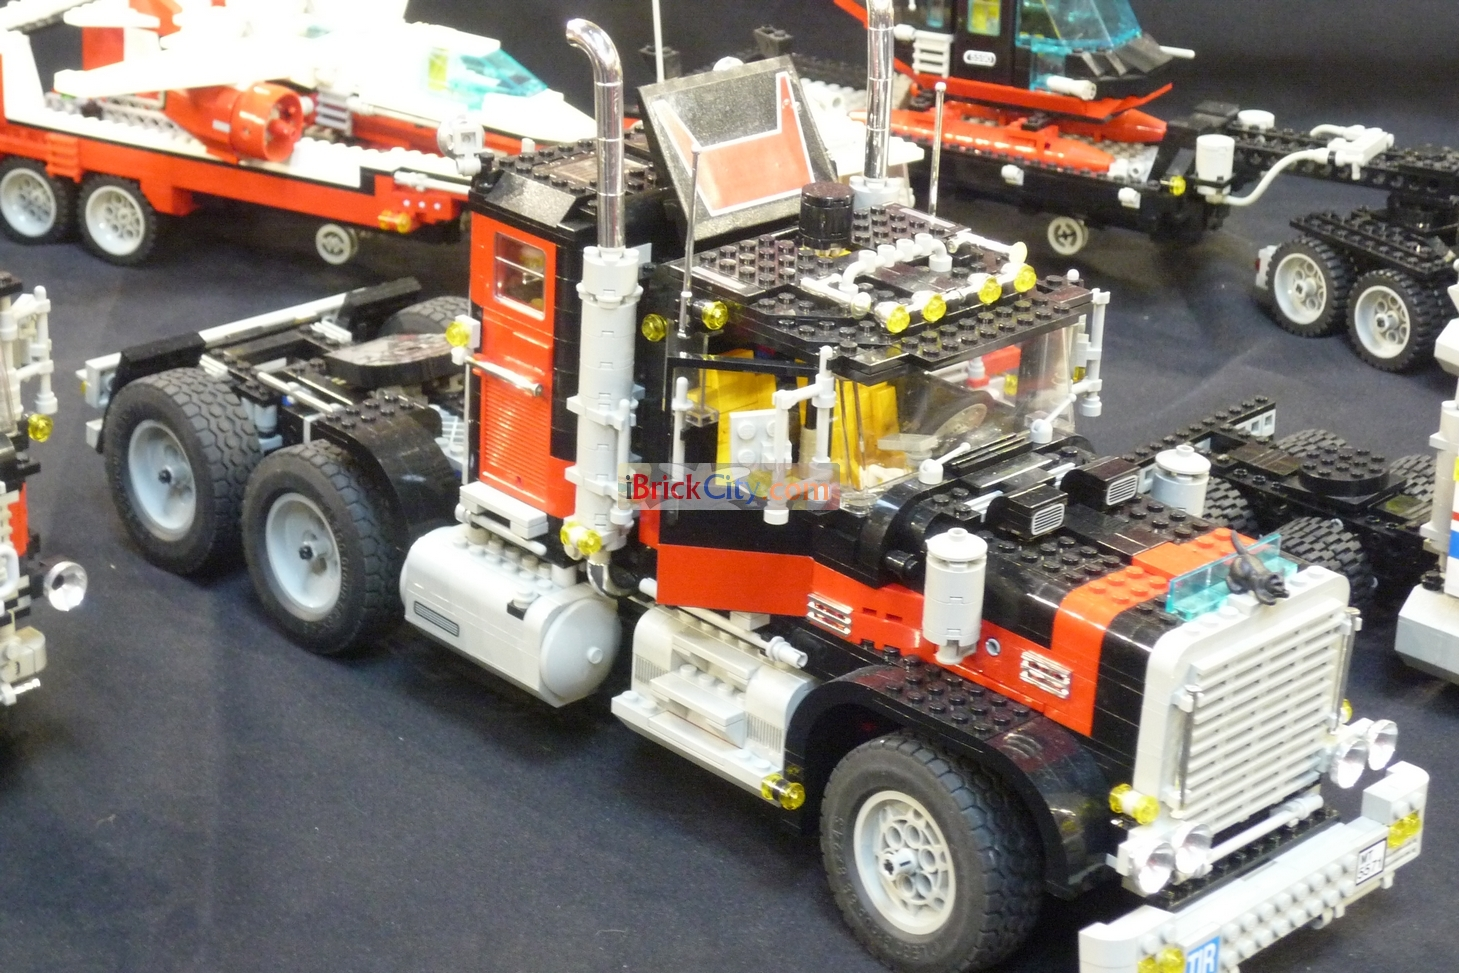 TechnicBRICKs: Official box images from 2H2012 LEGO Technic sets